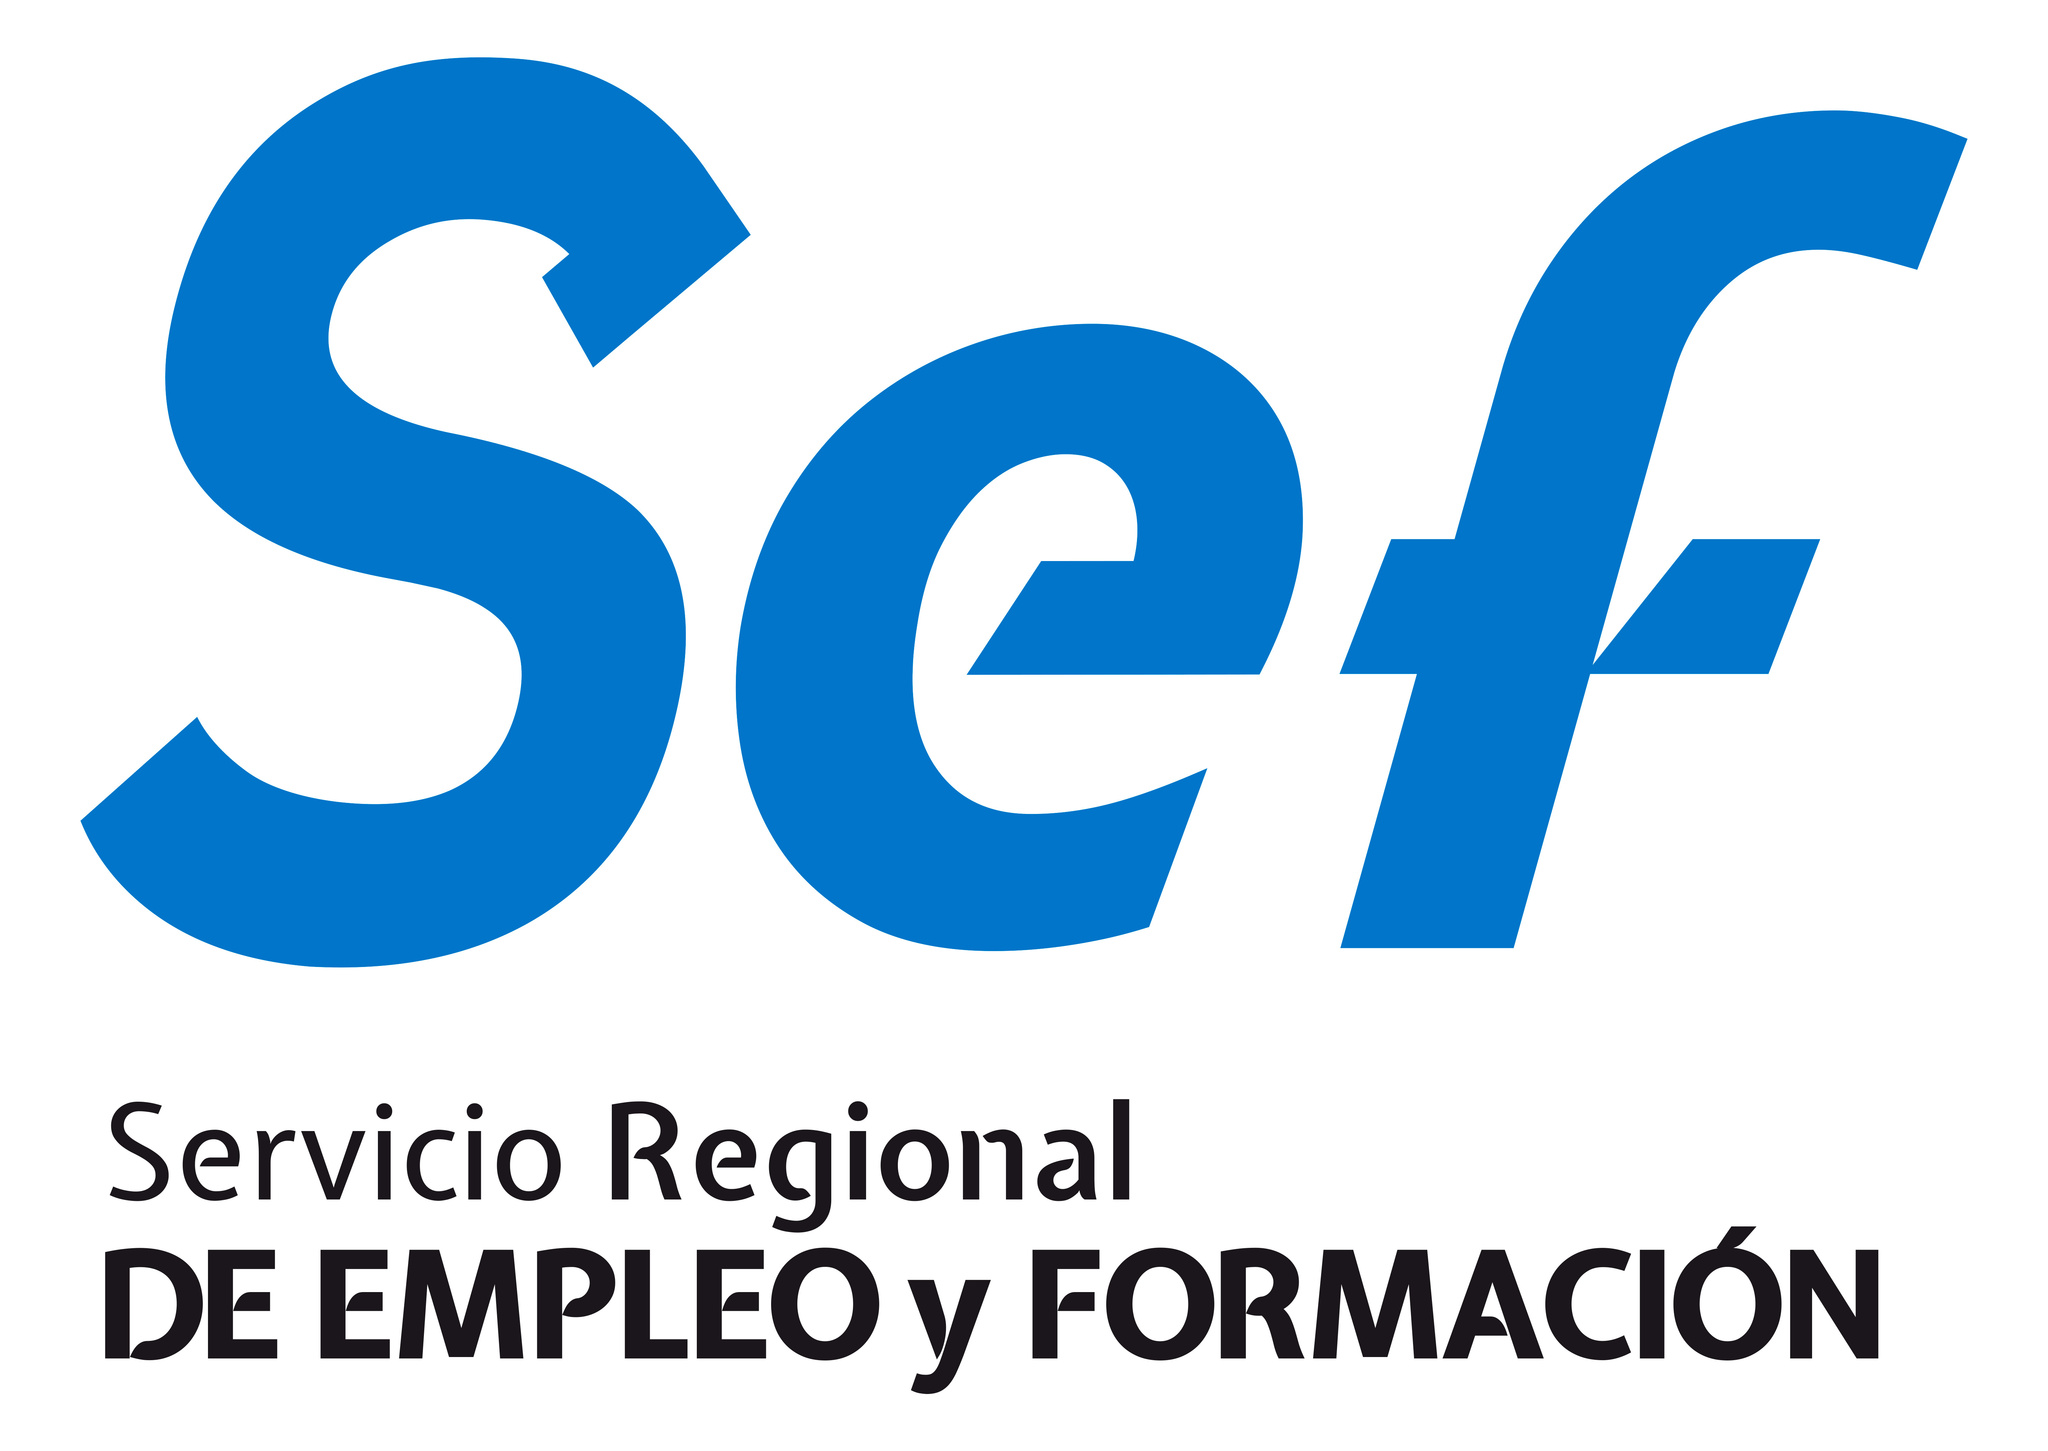 Logotipo del SEF en color